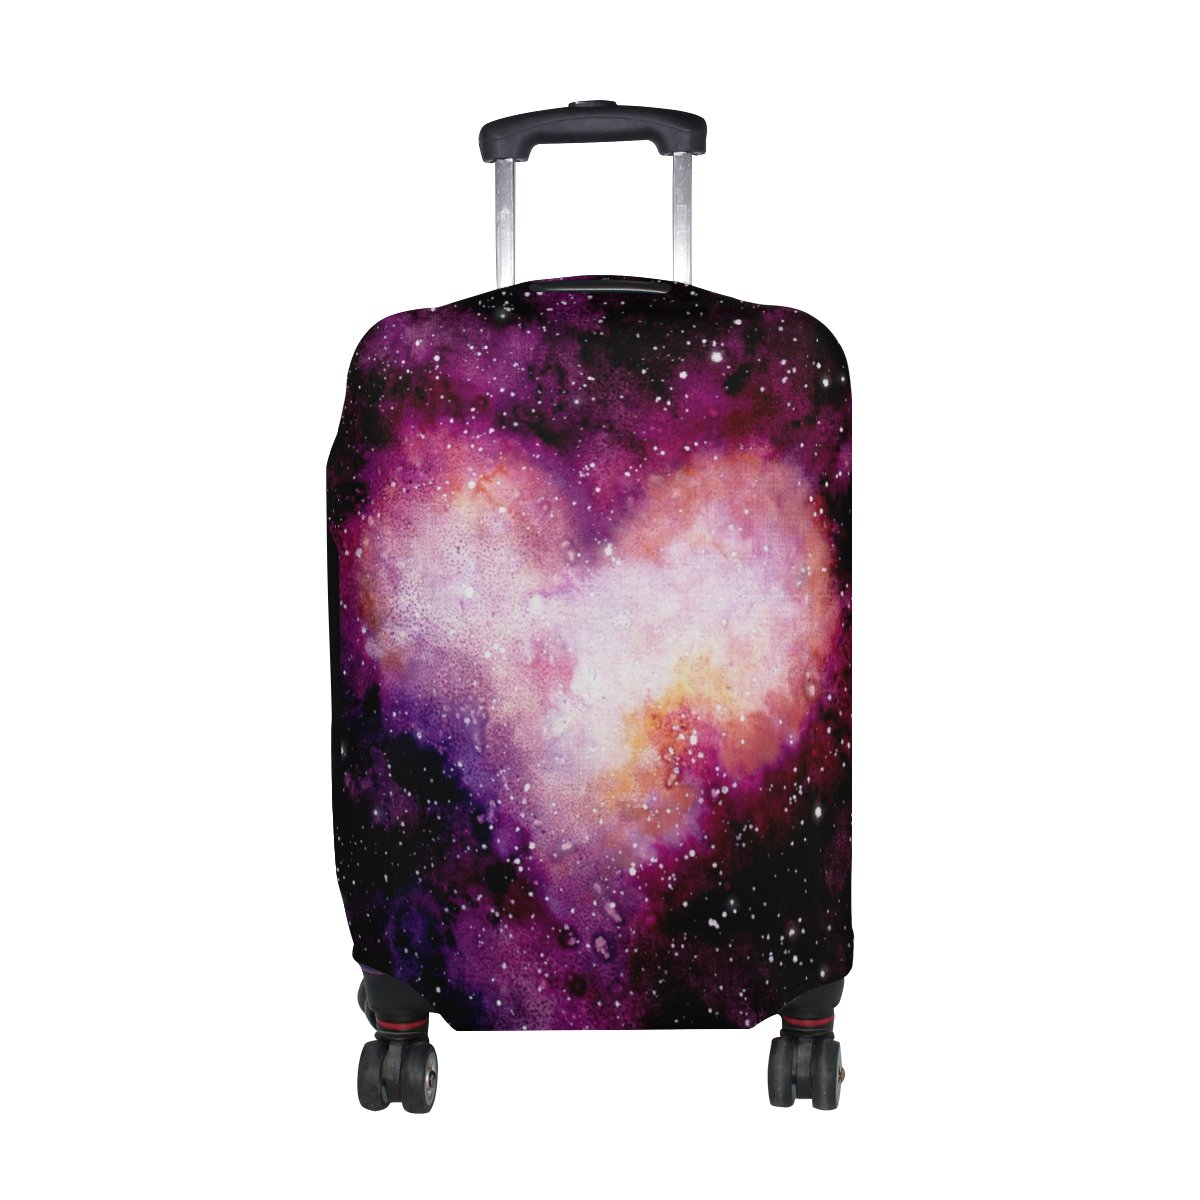 U LIFE Love Heart Galaxy Stars Luggage Suitcase Cover Protector for Travel